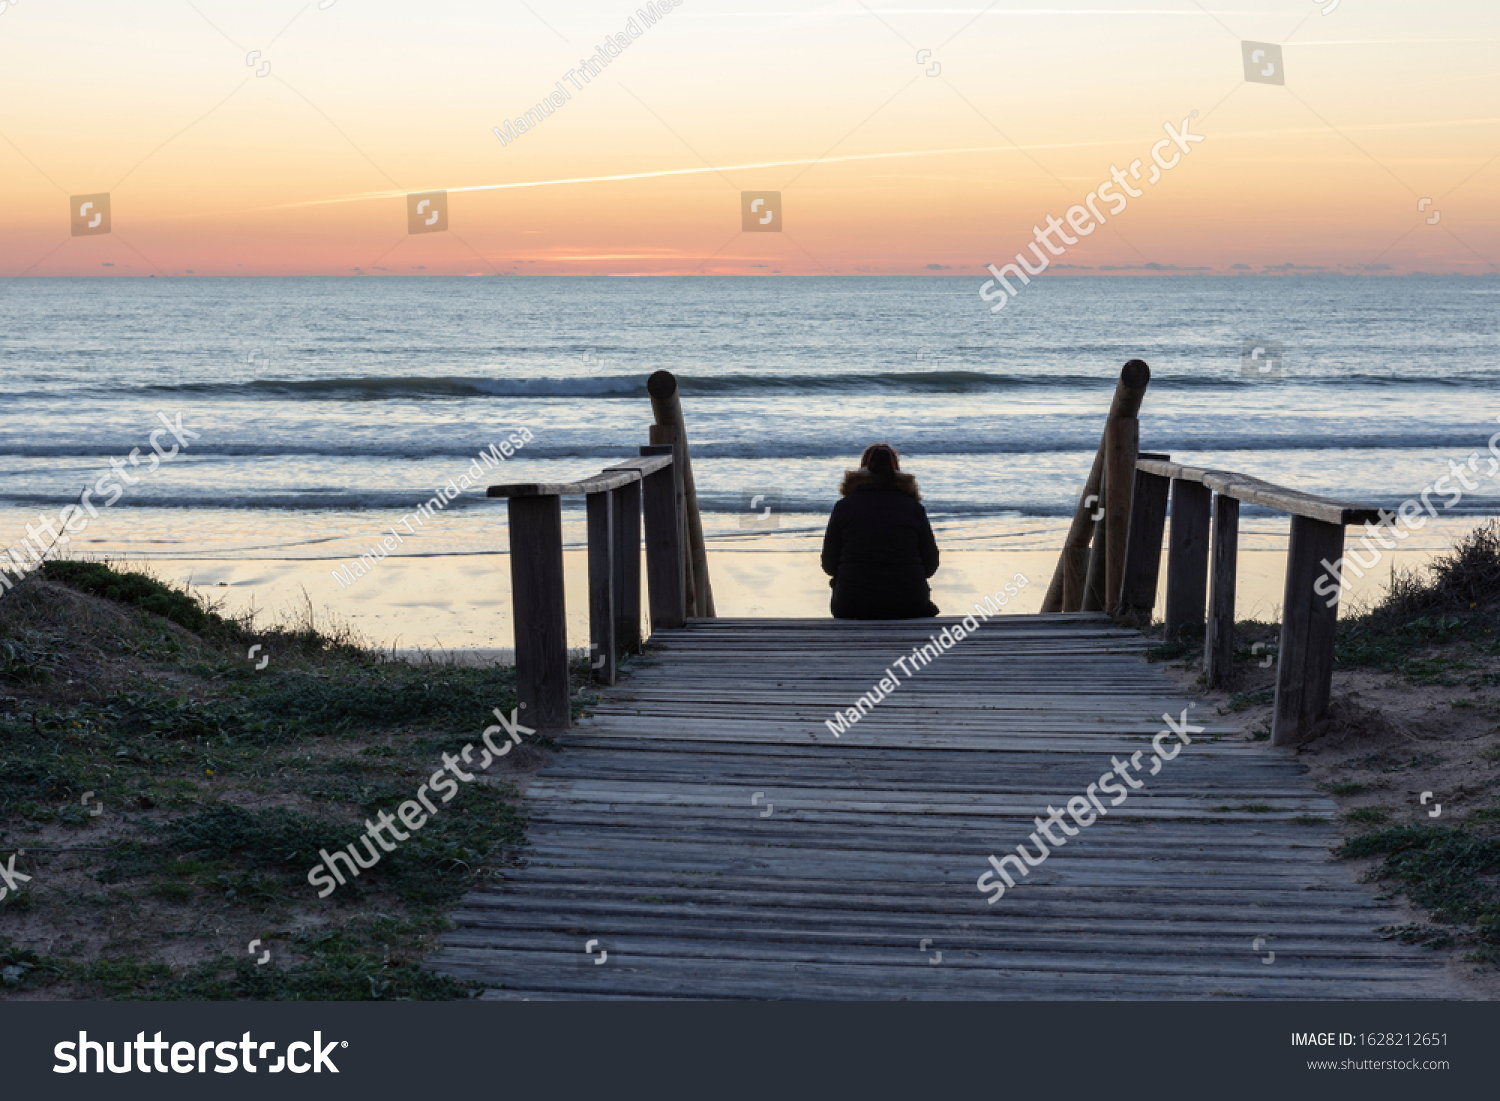 Woman watching the sunset on the beach